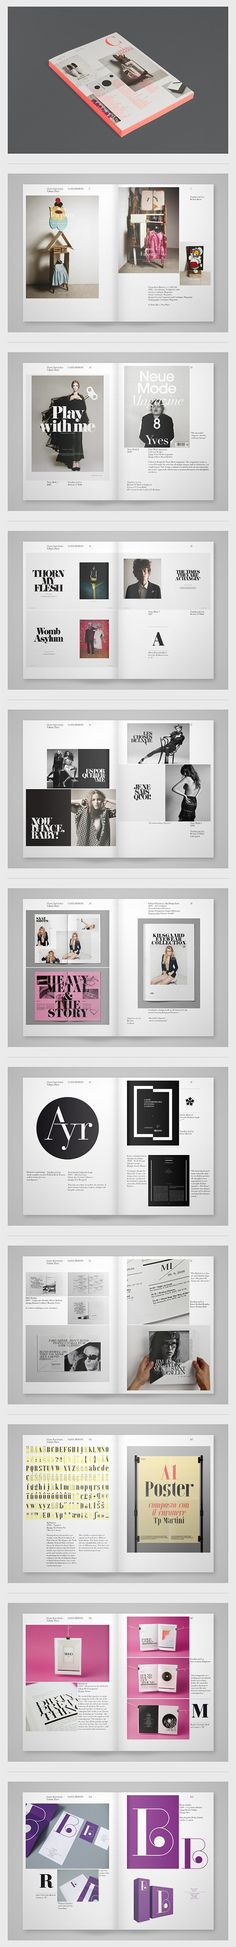 Fashion Magazine Layout Editorial Graphics 66 Ideas For 2019 Editorial Design Layouts, Magazine Layout Design, Graphic Design Layouts, Brochure Design, Graphic Design Inspiration, Design Ideas, Style Inspiration, Book Layout, Page Layout